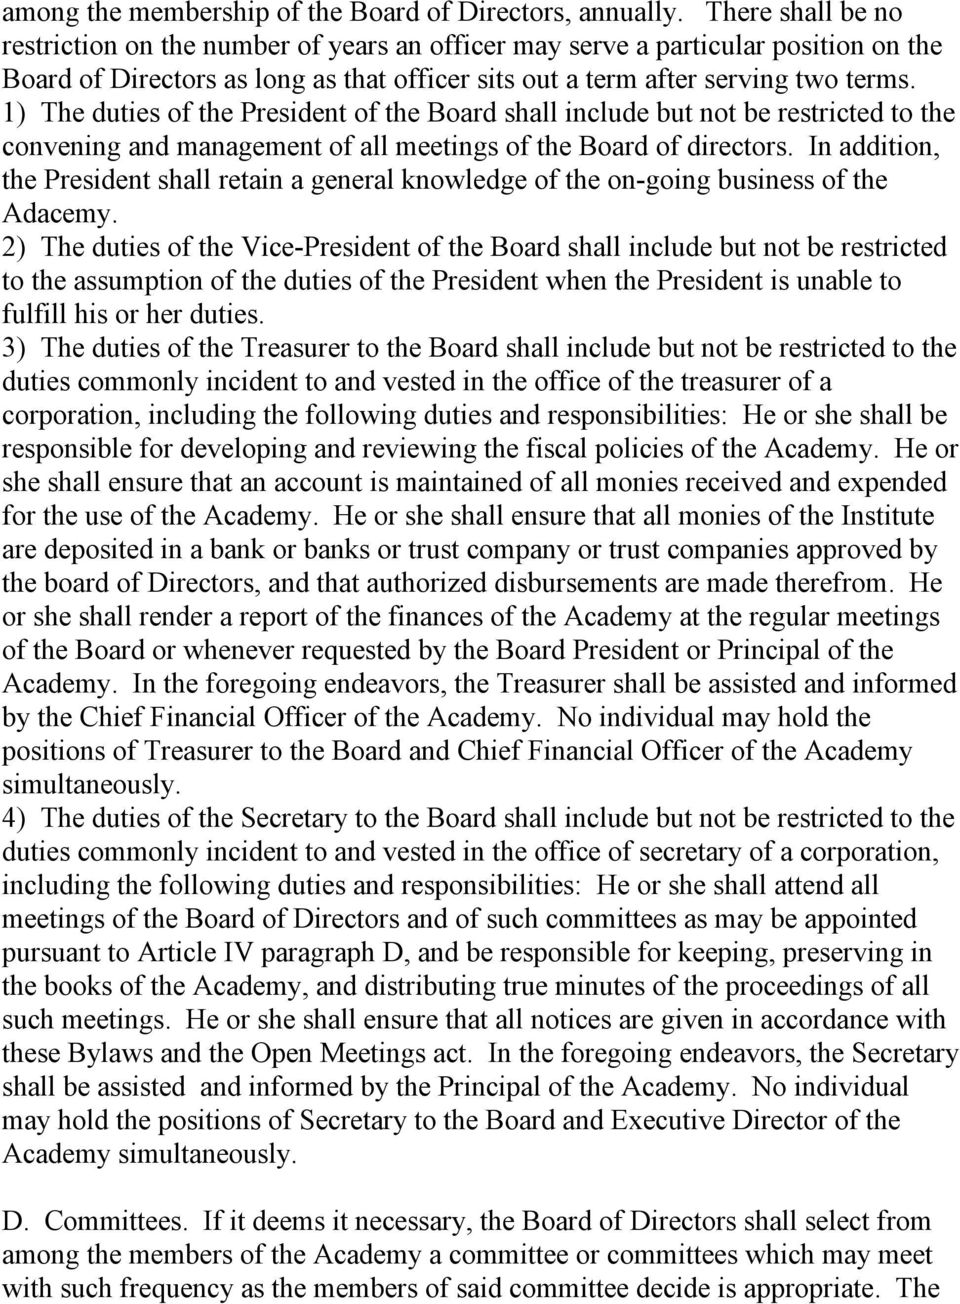 1) The duties of the President of the Board shall include but not be restricted to the convening and management of all meetings of the Board of directors.